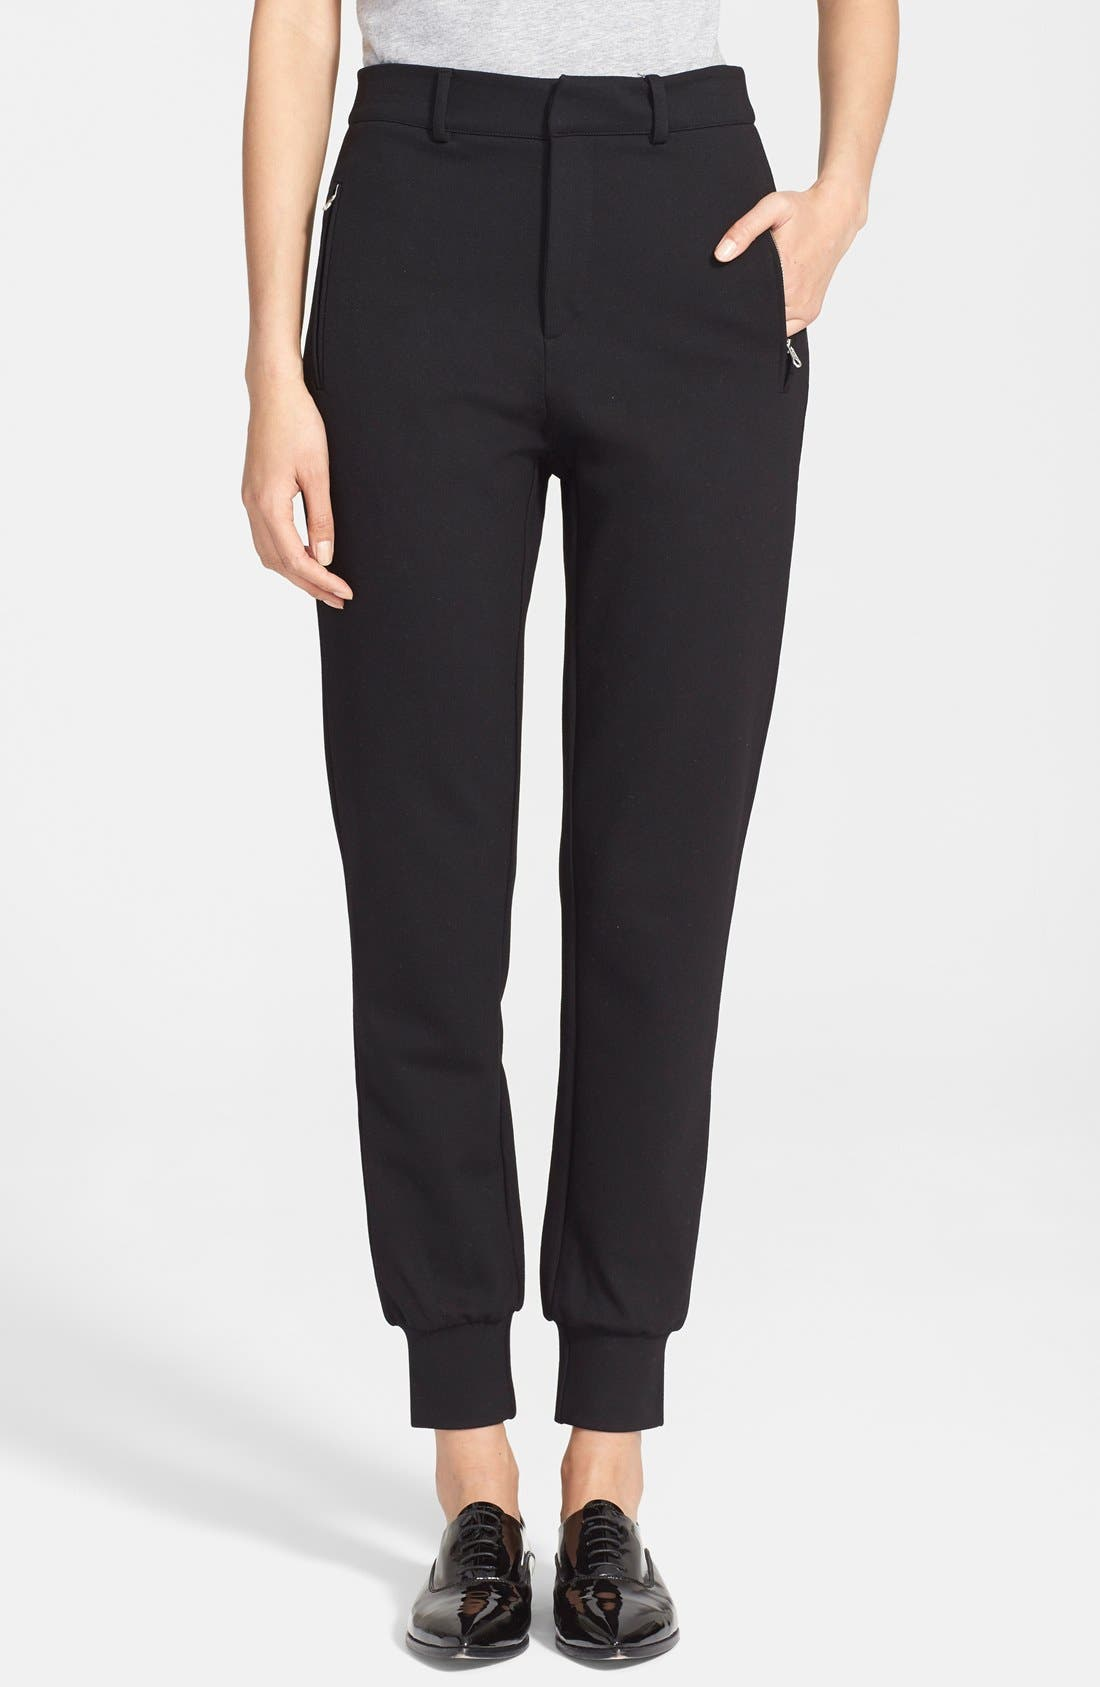 MCQ ALEXANDER MCQUEEN,                             McQ by Alexander McQueen Tailored Sweatpants,                             Main thumbnail 1, color,                             001